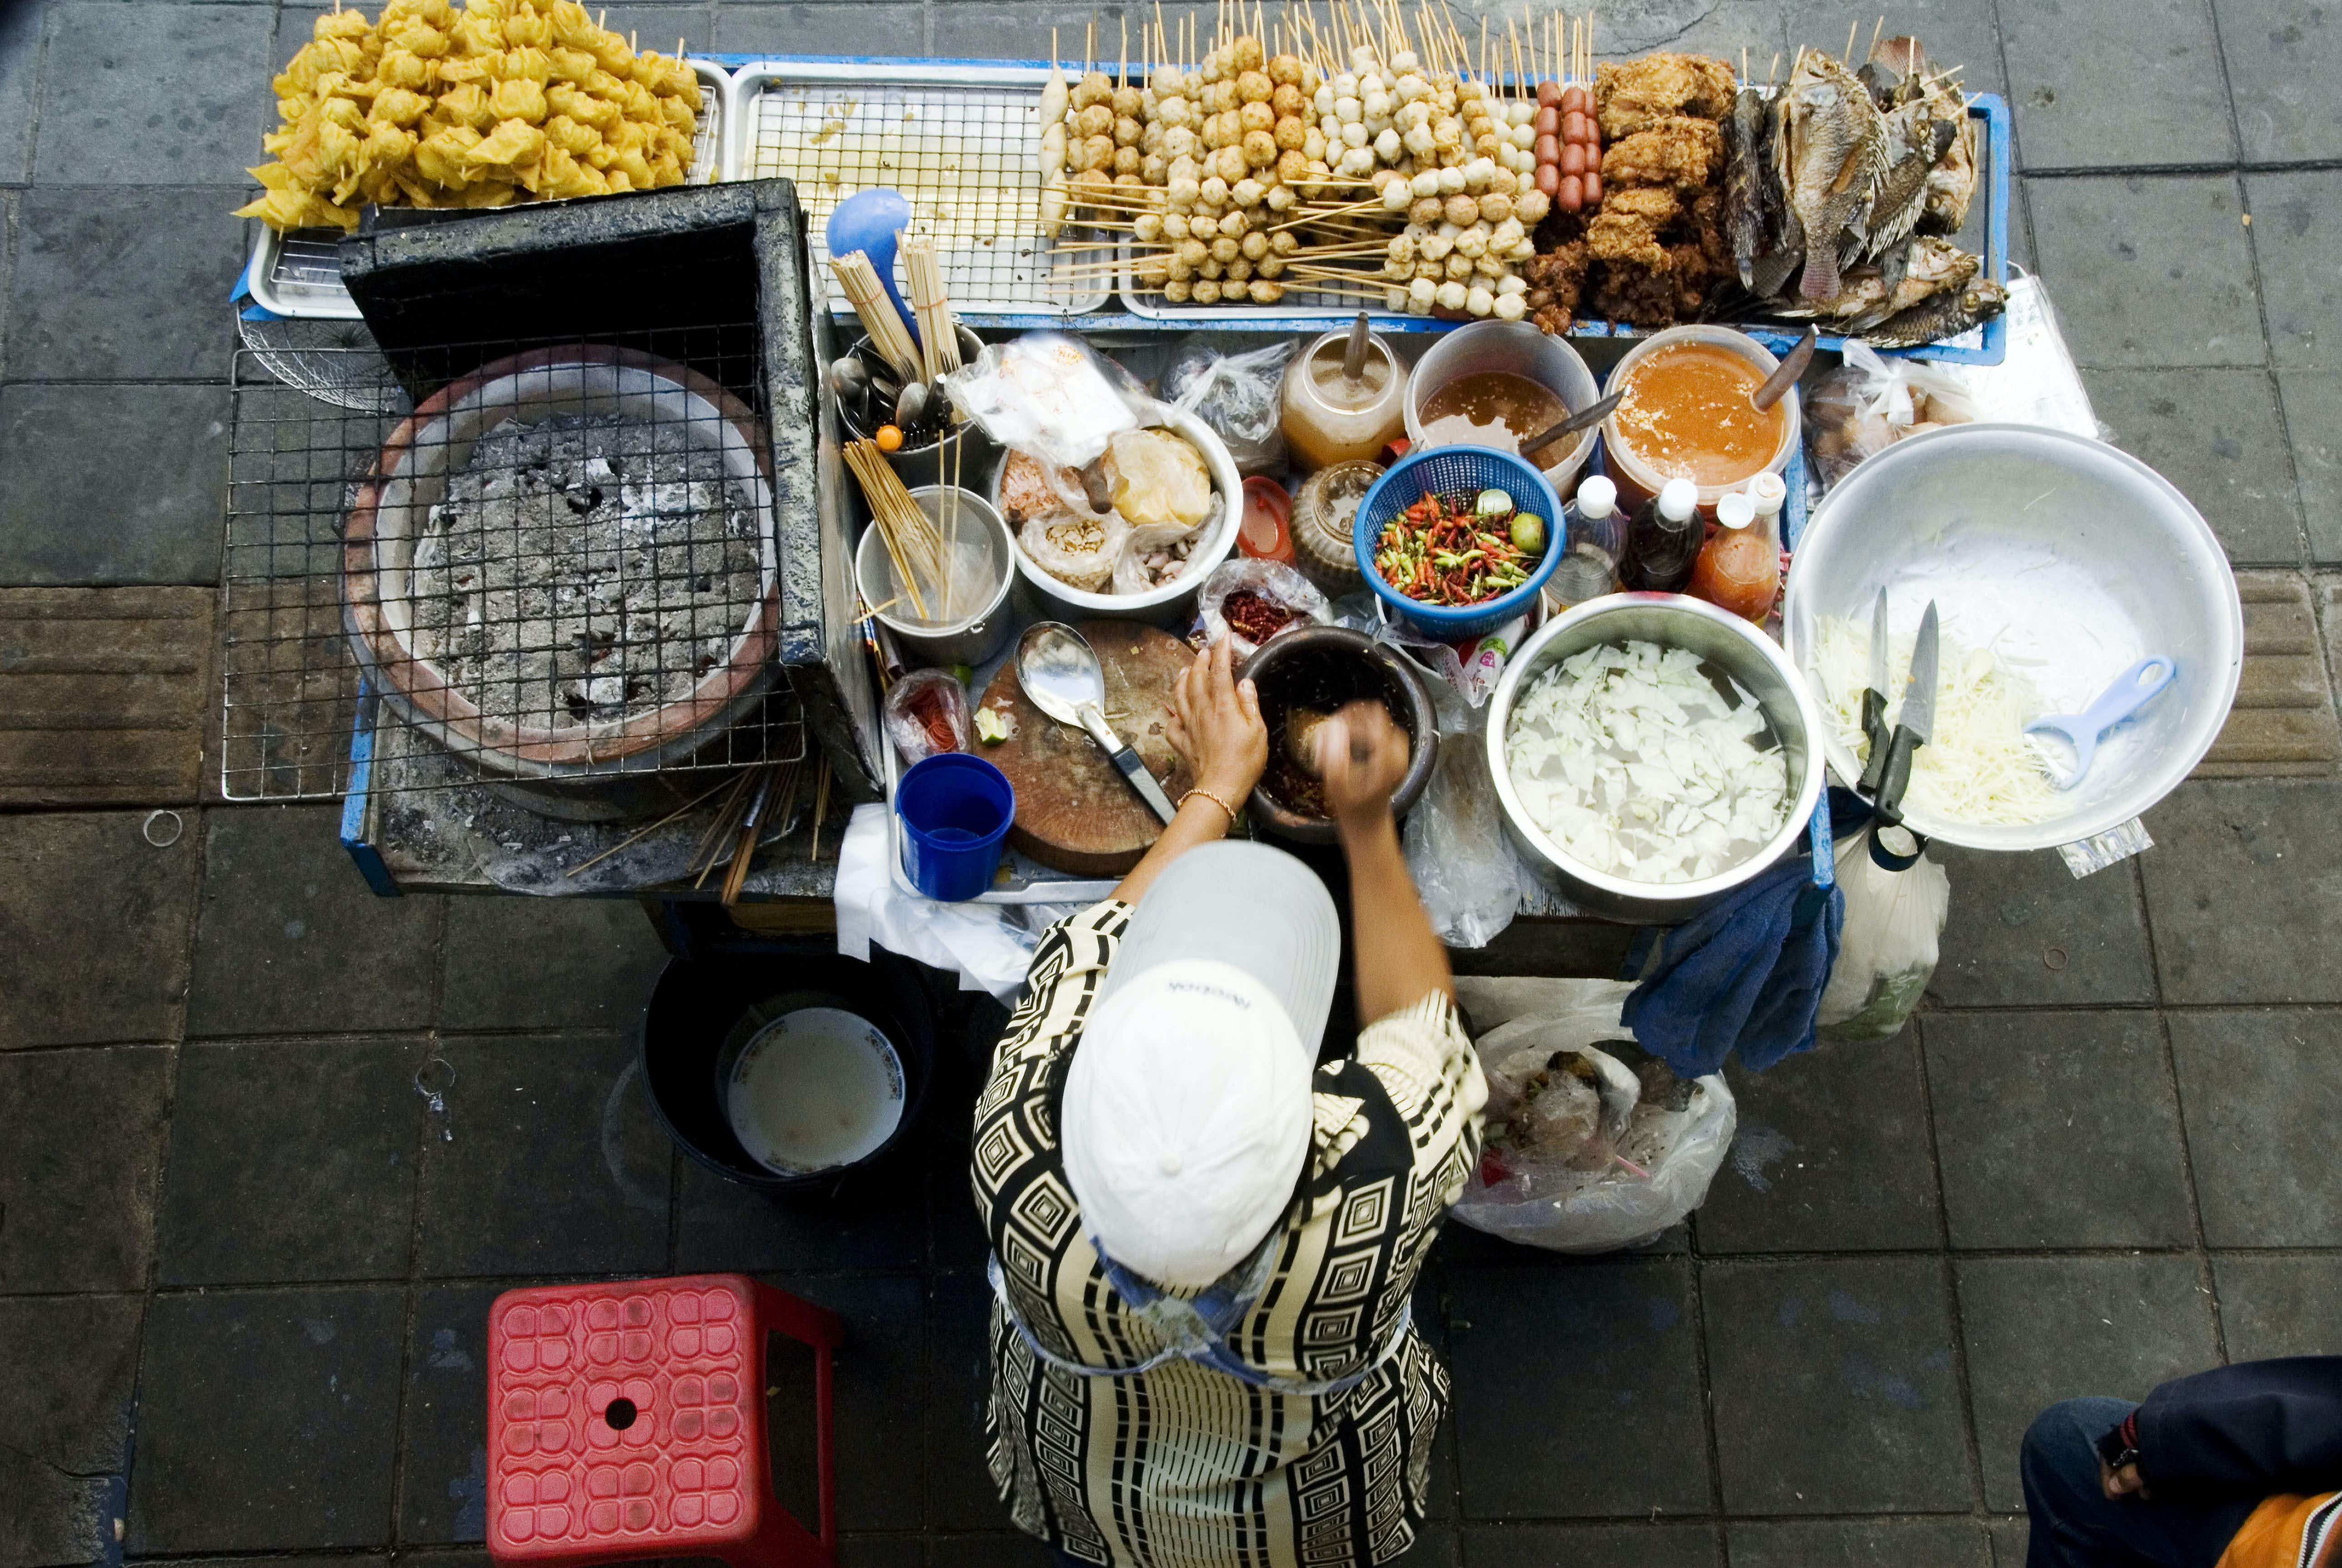 Street food vendors in Bangkok could be a thing of the past after this year